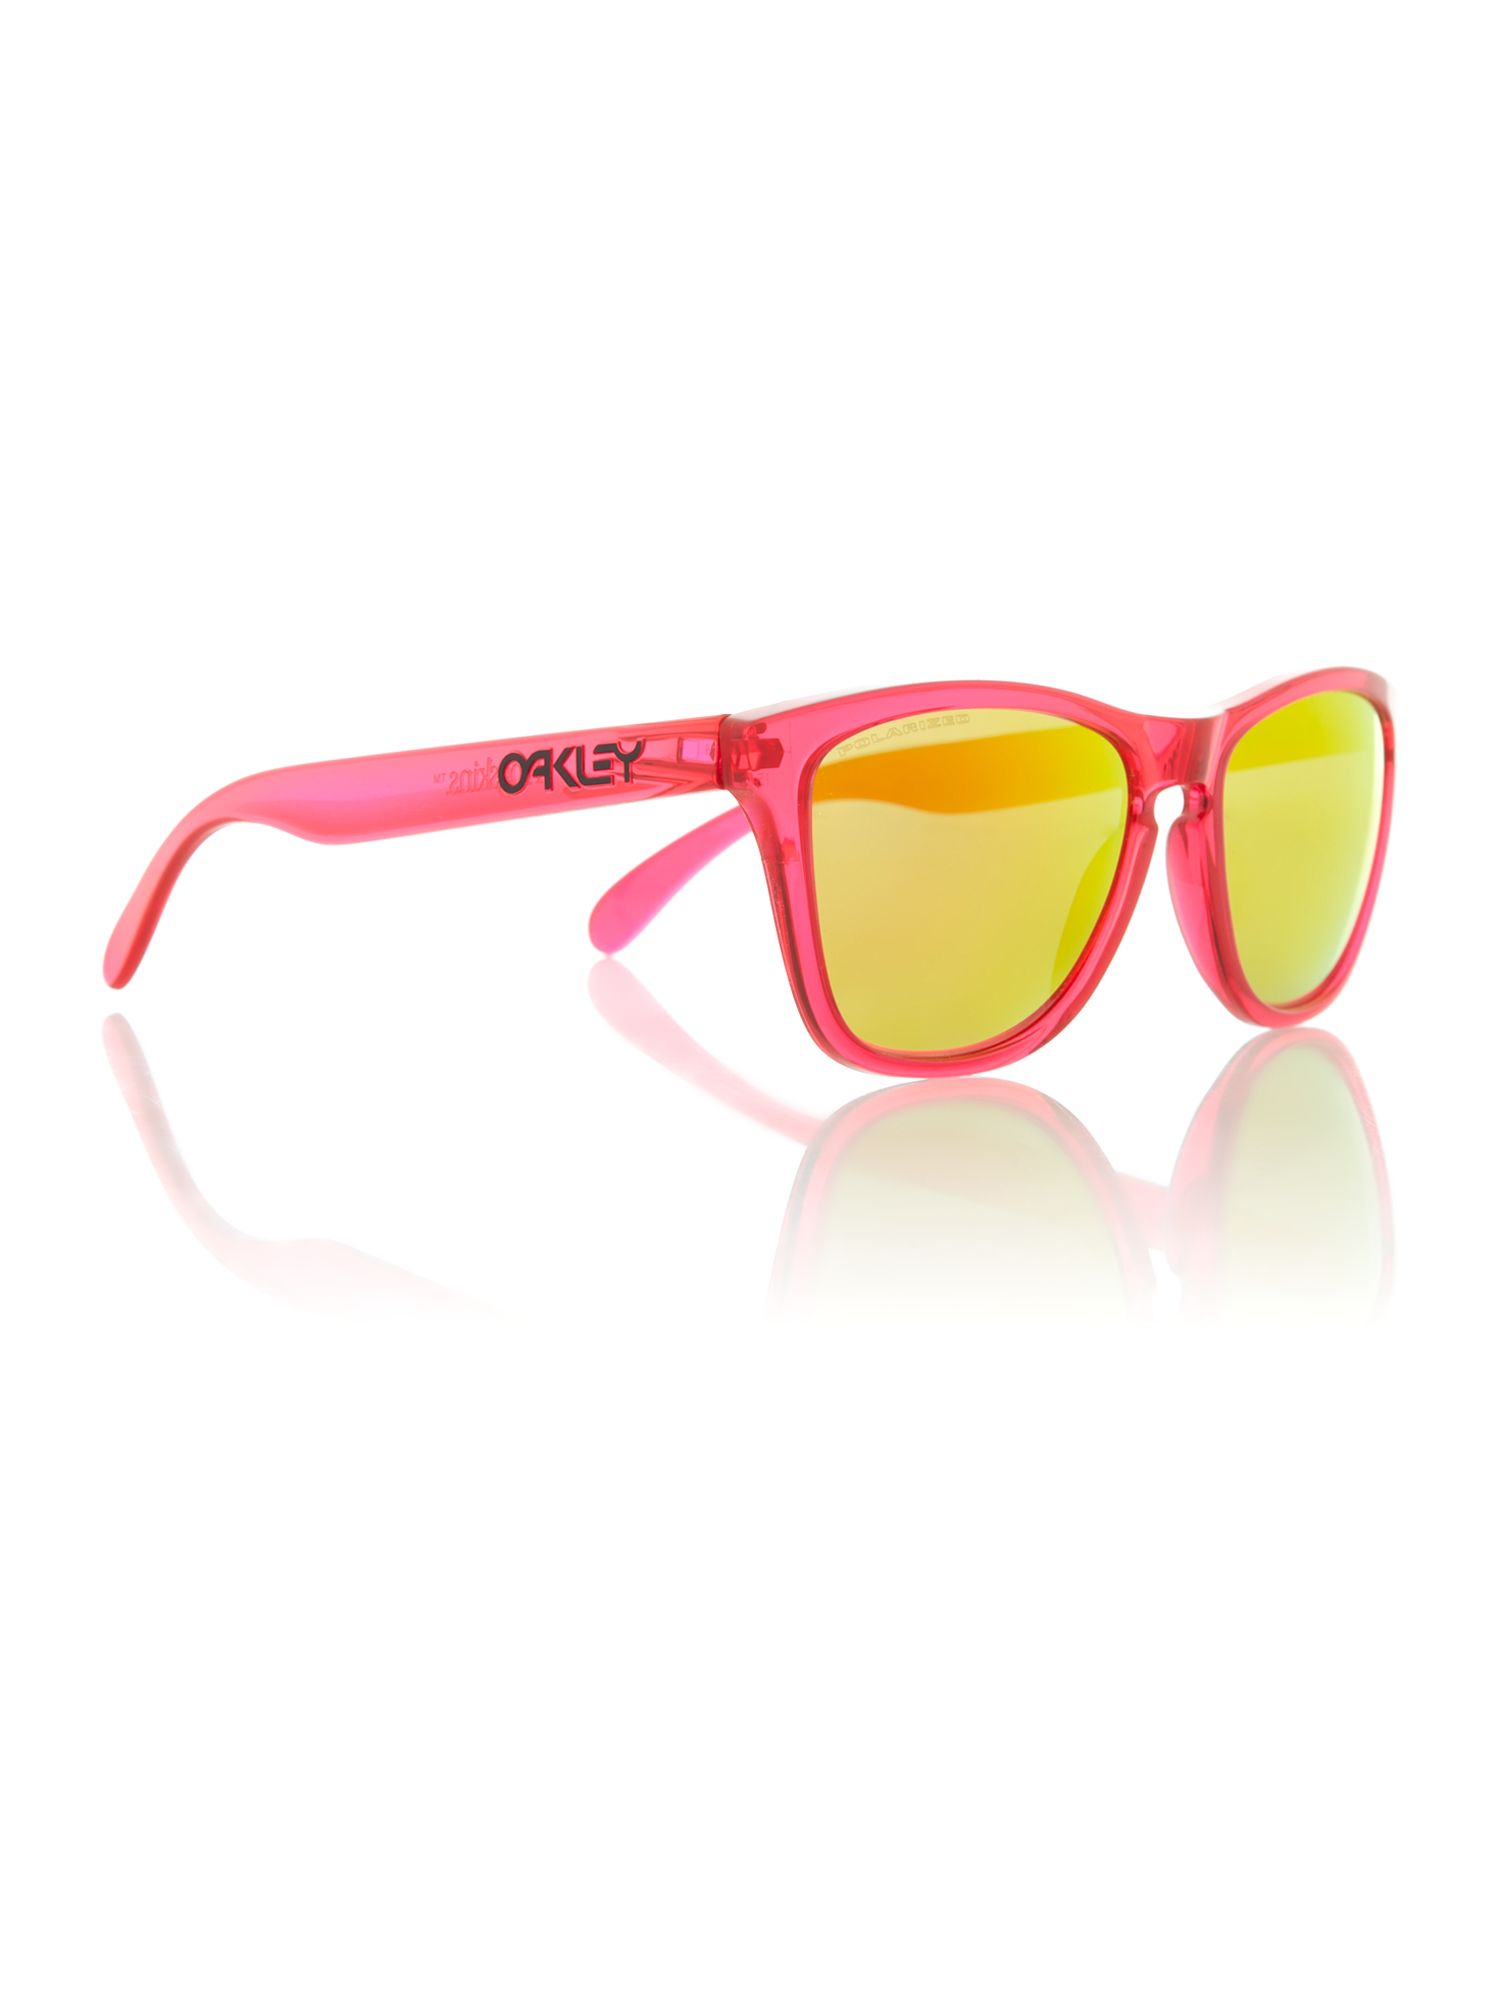 Oakely men`s OO9013 pink frogskin sunglasses